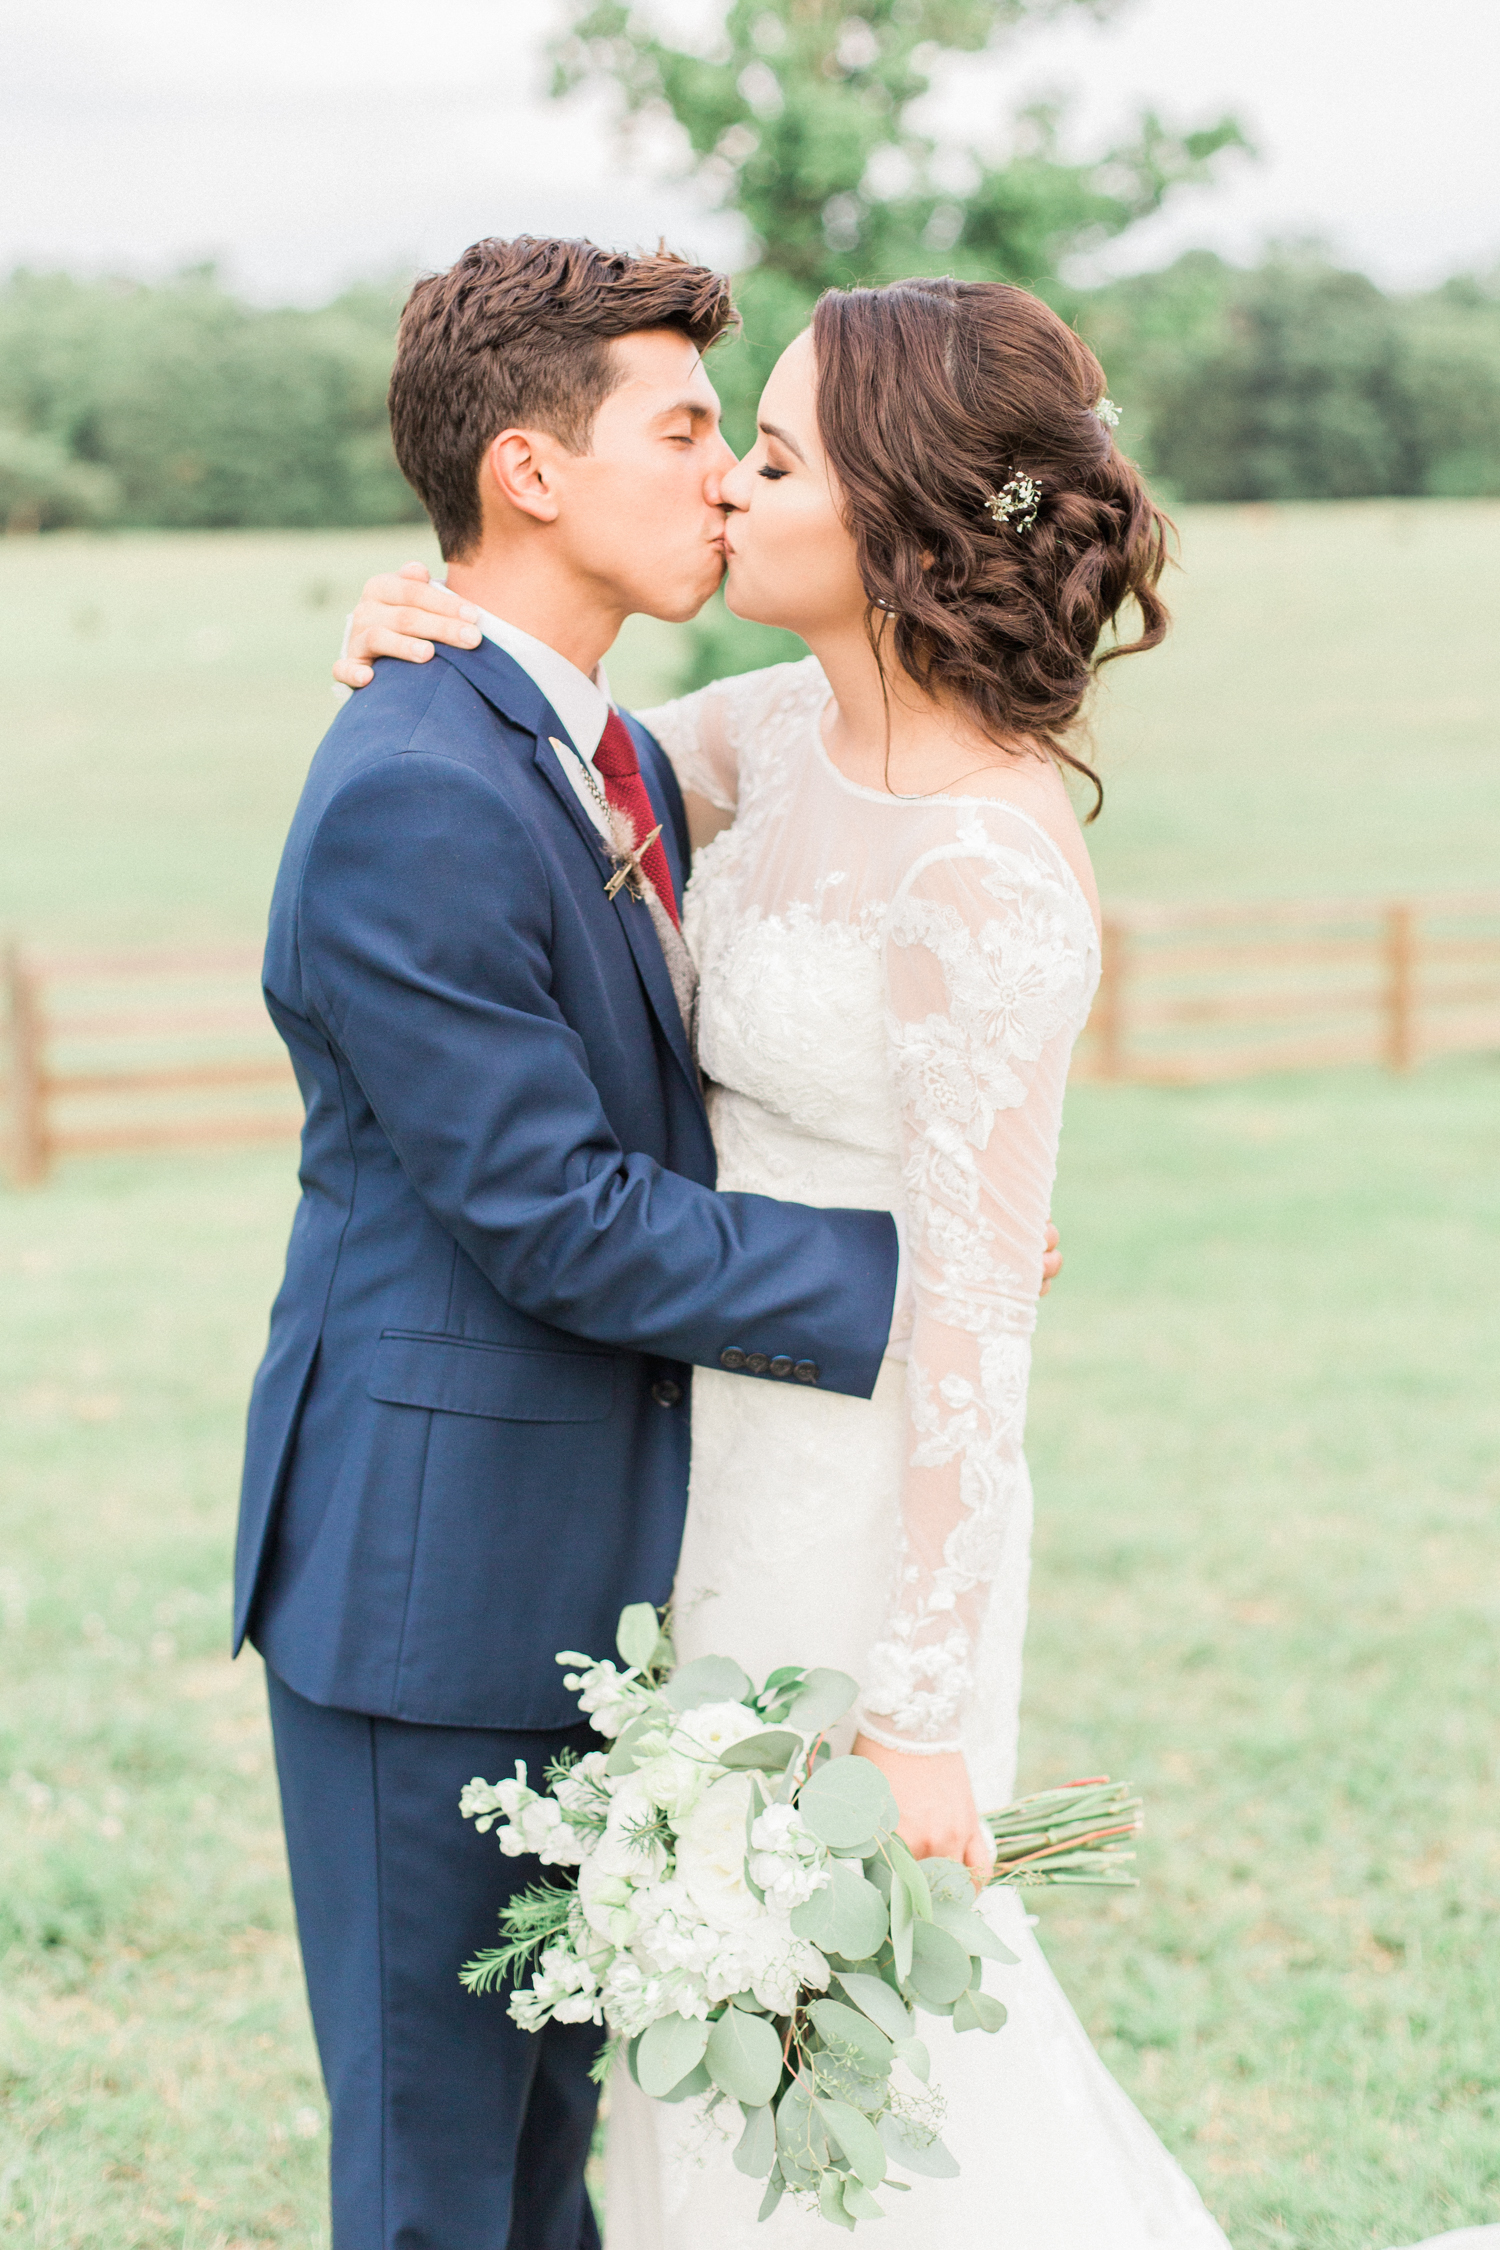 Bride and groom sharing a kiss- bride is in a long sleeved lace David's Bridal gown. Summer, outdoor, barn wedding in north Georgia at Hays McDonald Farm in Jefferson, Georgia. Photo by Kesia Marie Photography - Fine Art Wedding Photographer.